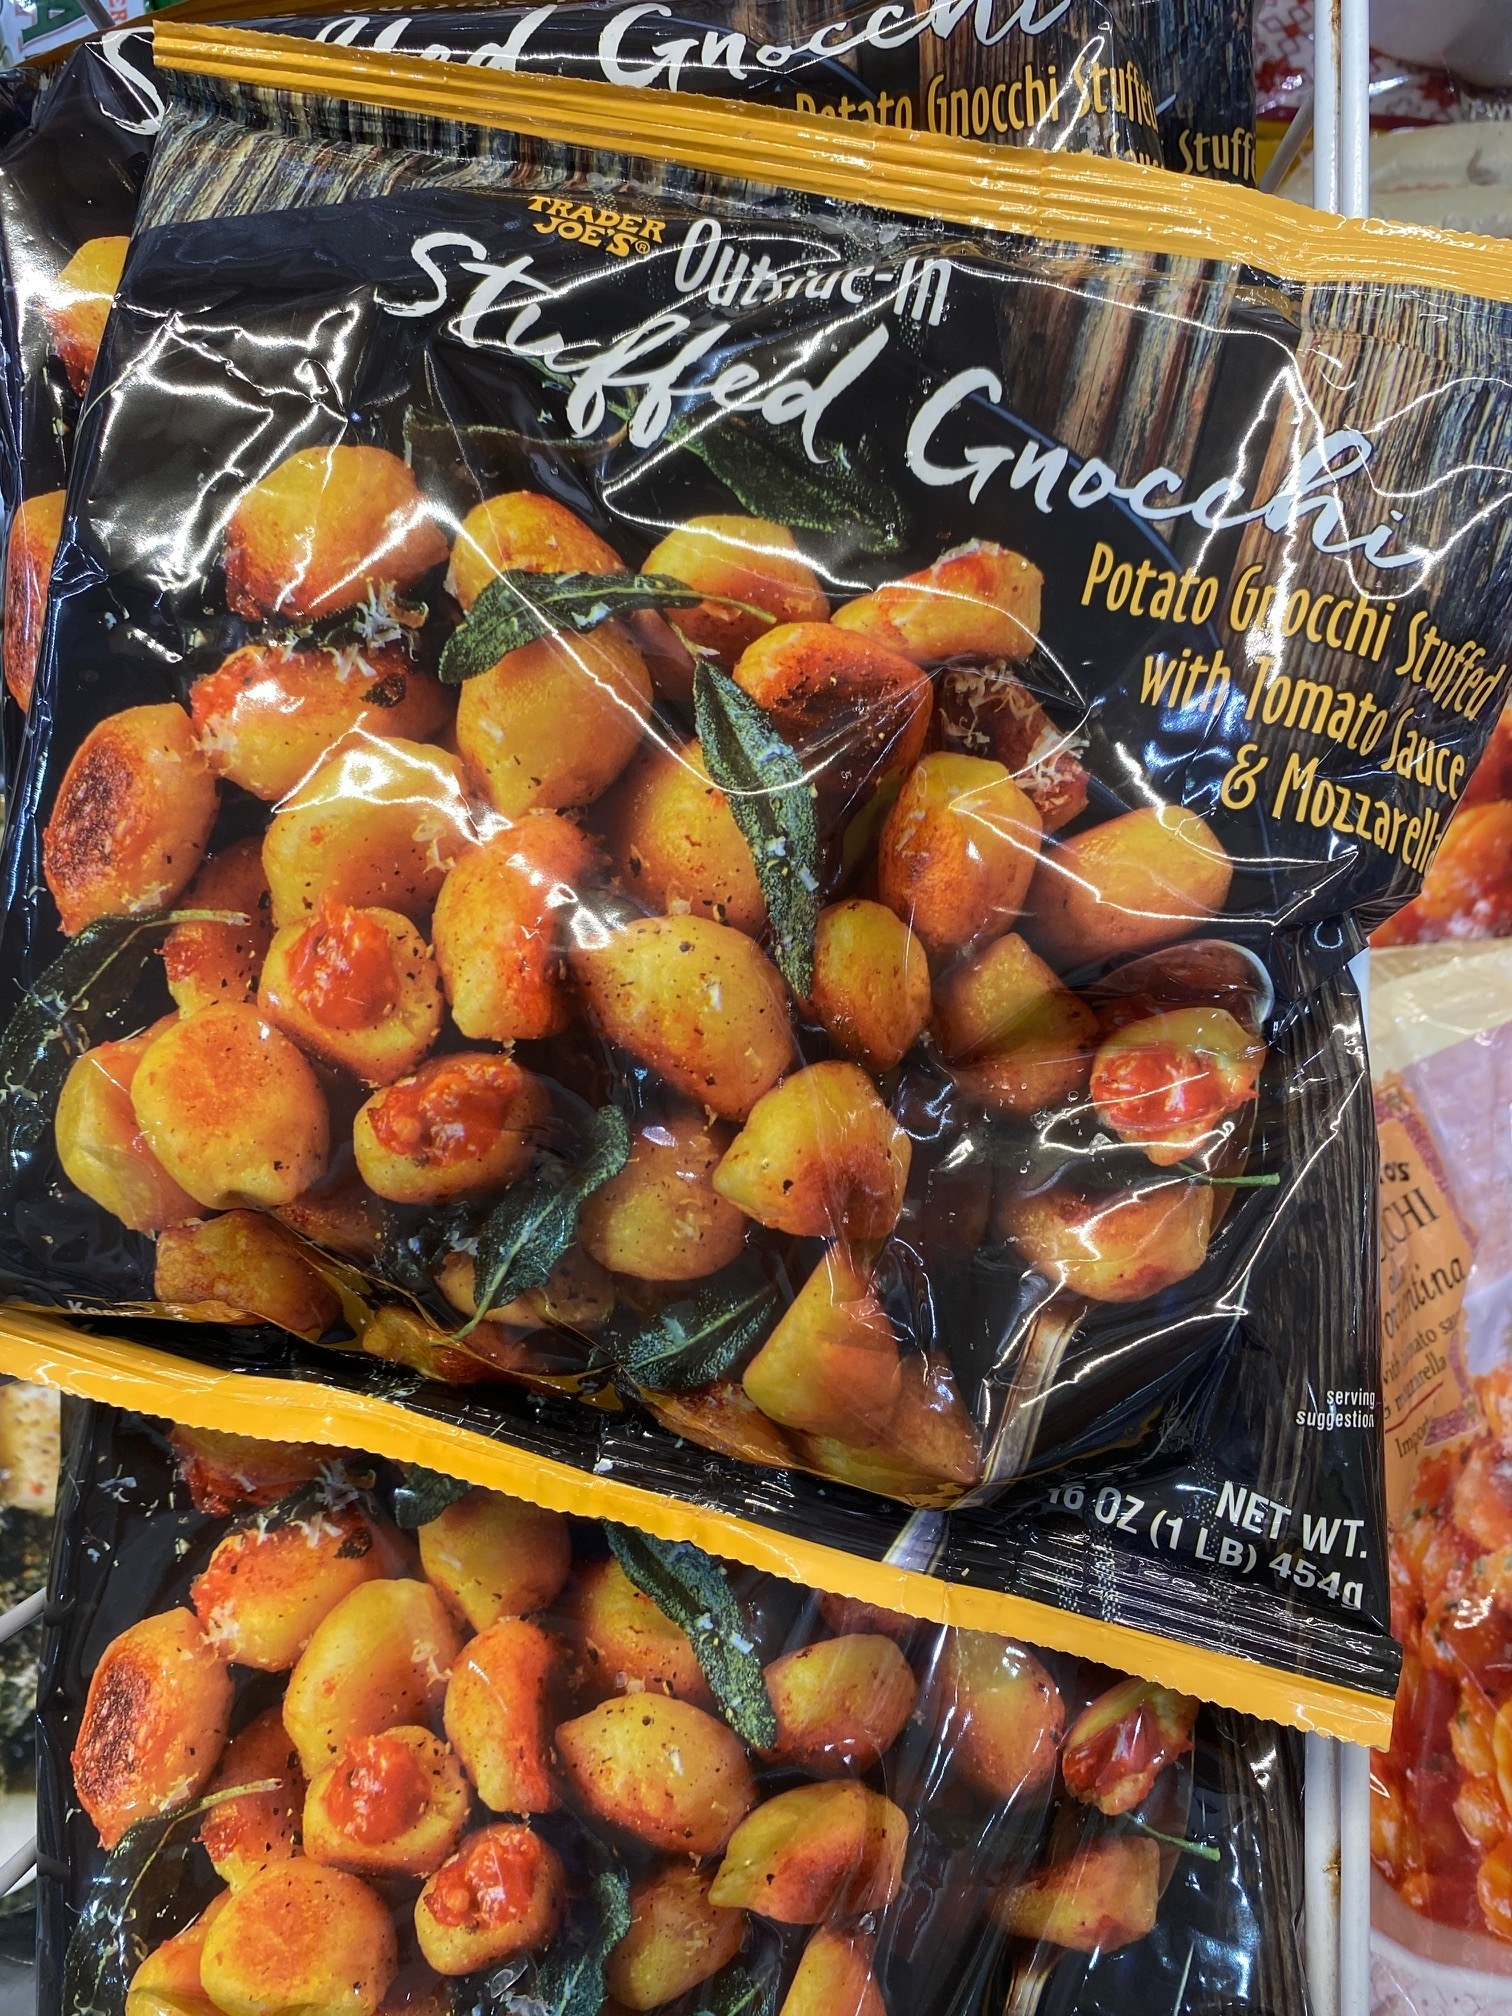 A bag of frozen stuffed outside-in gnocchi.